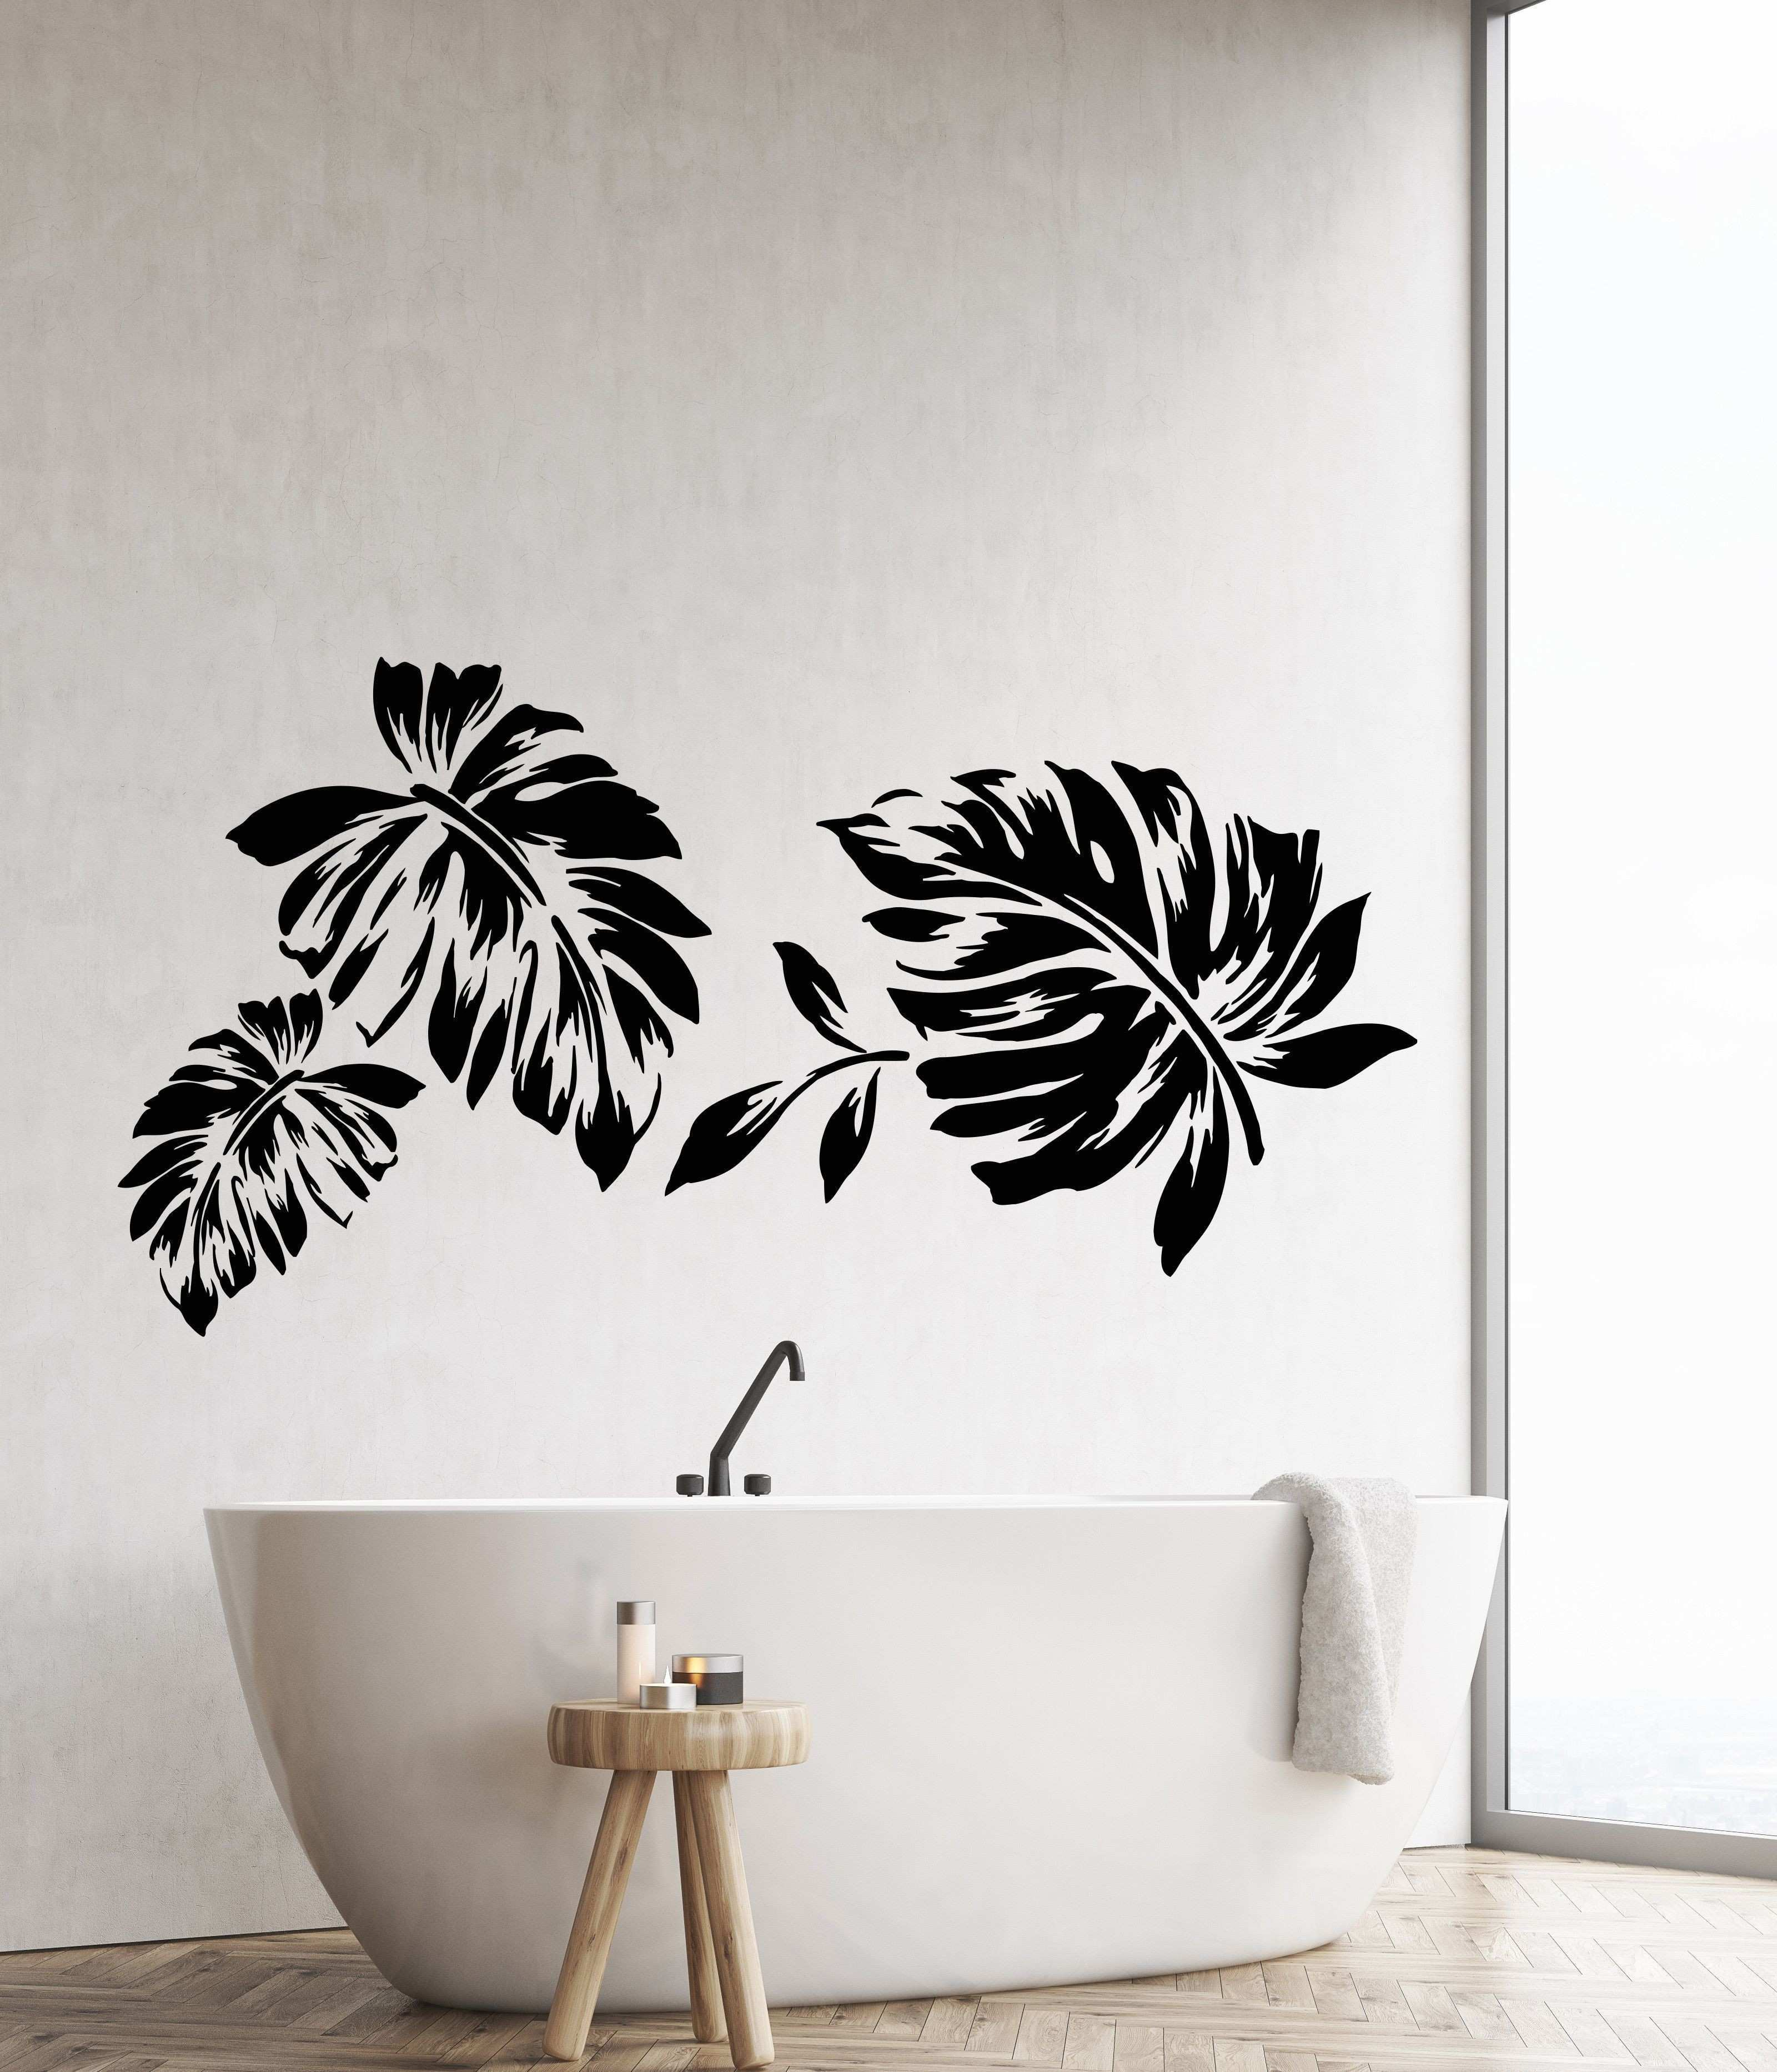 Vinyl Wall Decal Leaves Foliage Nature Style Room Decor Stickers